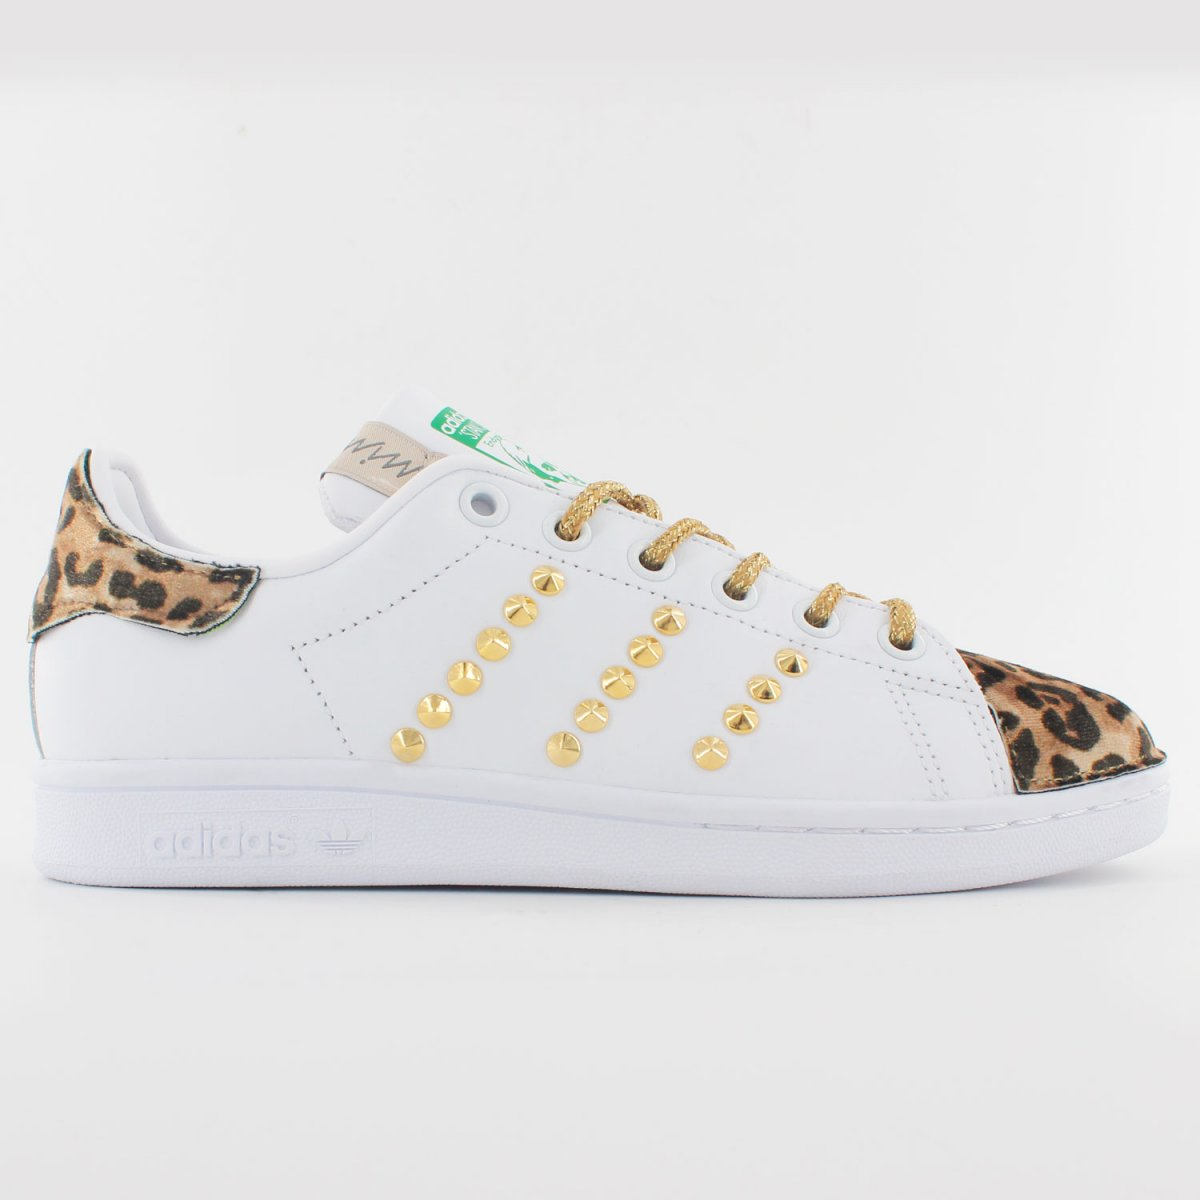 Adidas Stan Smith Street Leo Gold